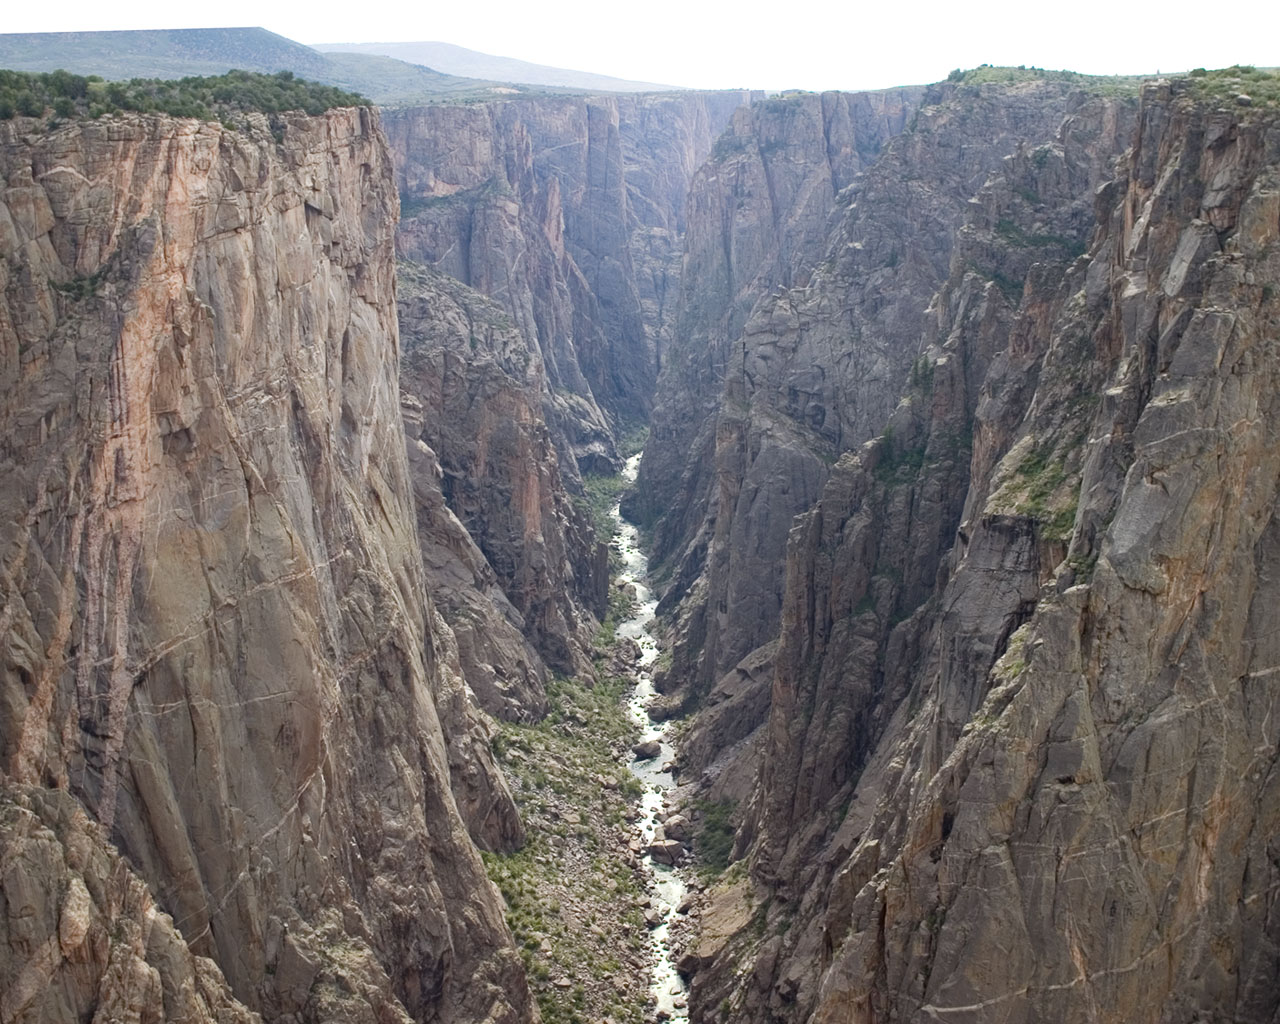 The Gunnison River flows 2,000 feet below the rim of the Black Canyon of the Gunnison